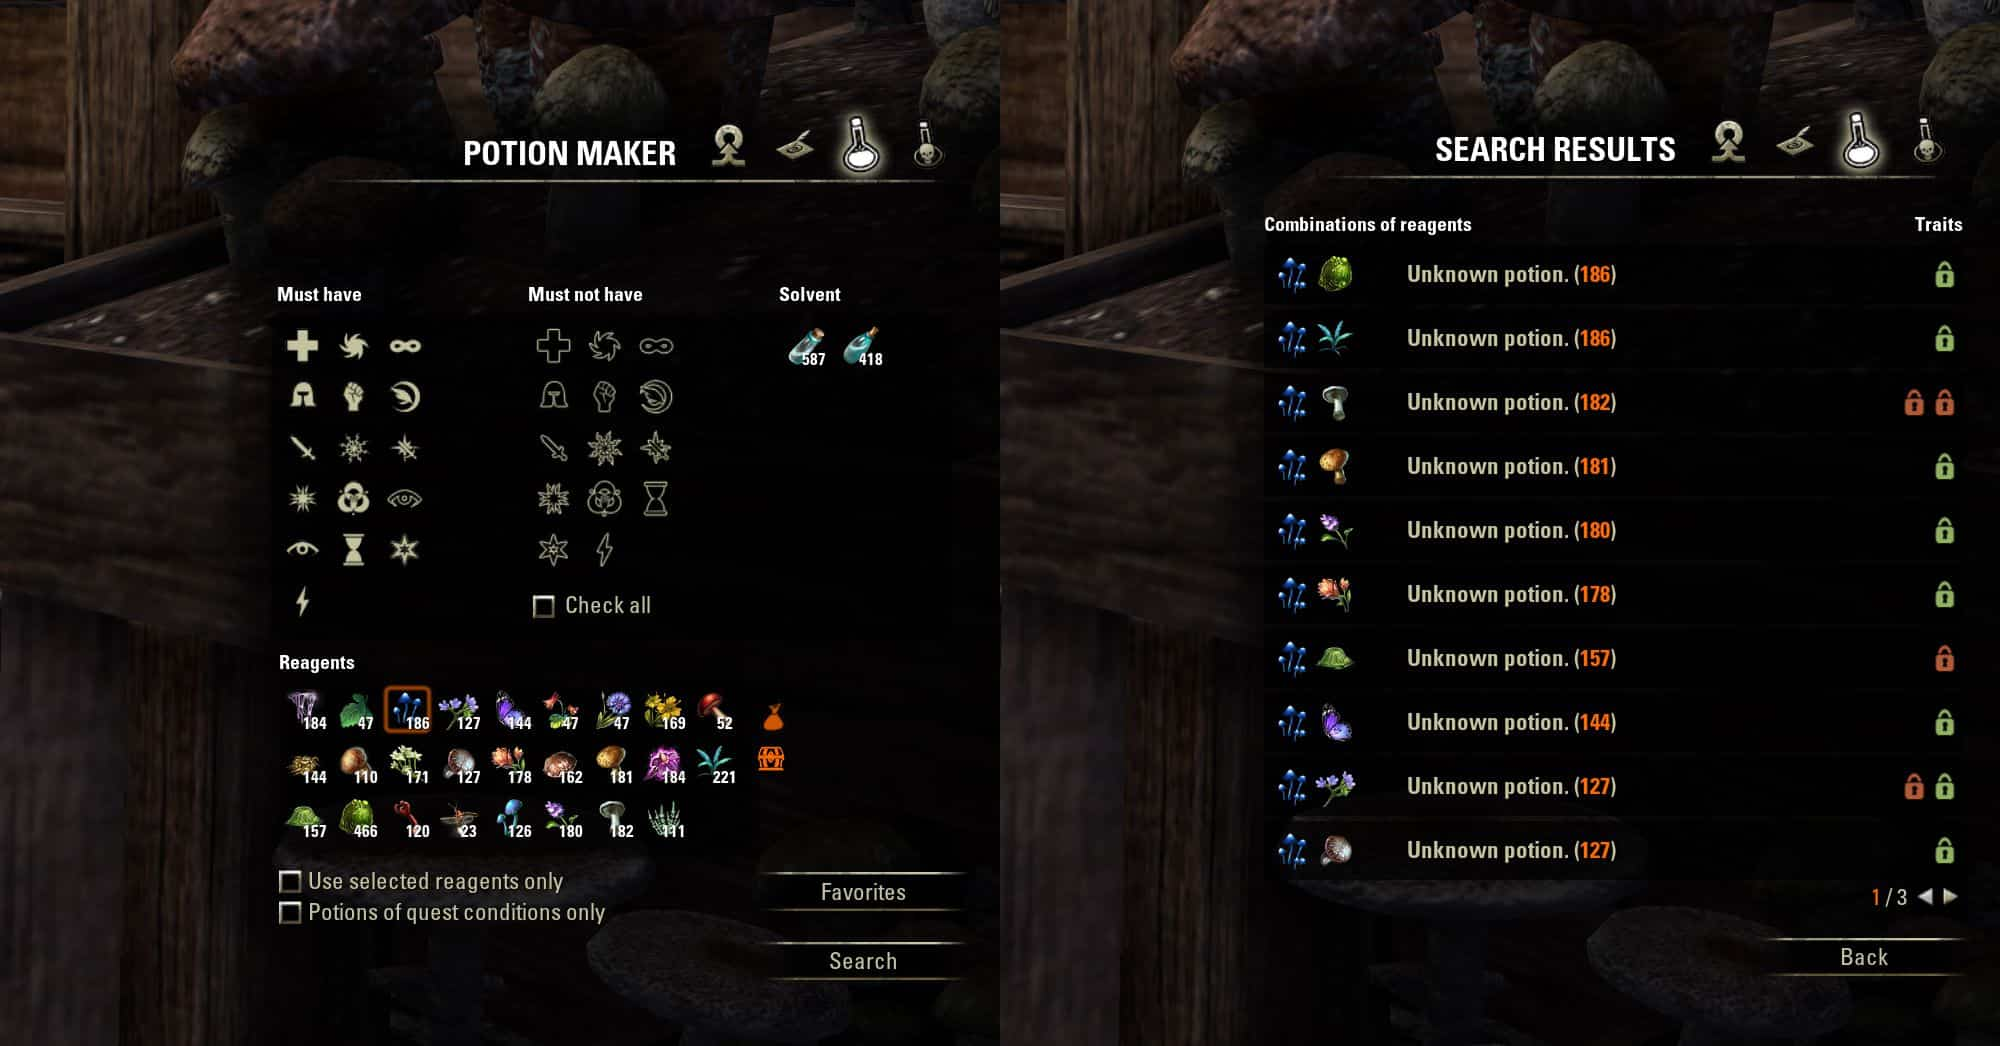 Potion Maker by facit, Khrill & votan, The Elder Scrolls Online Addon (image by @serpentaa)